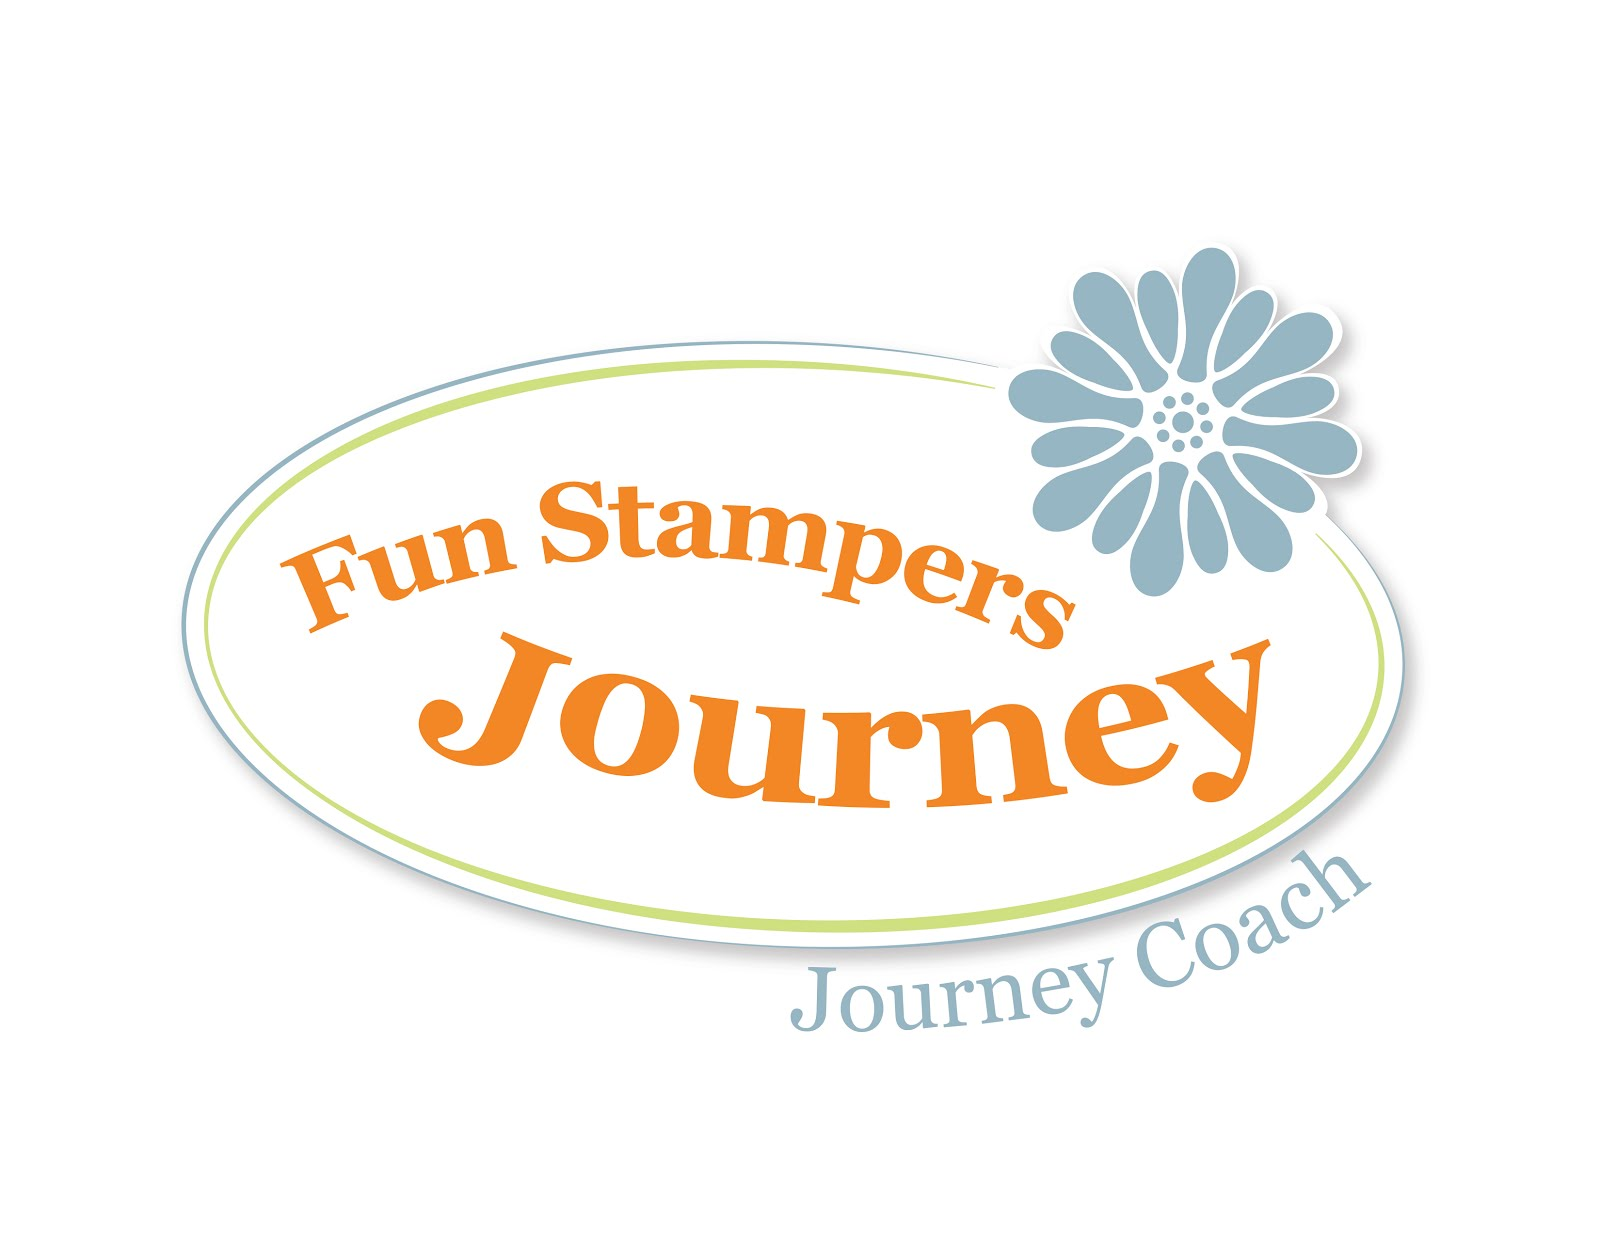 Learn more about Fun Stampers Journey!